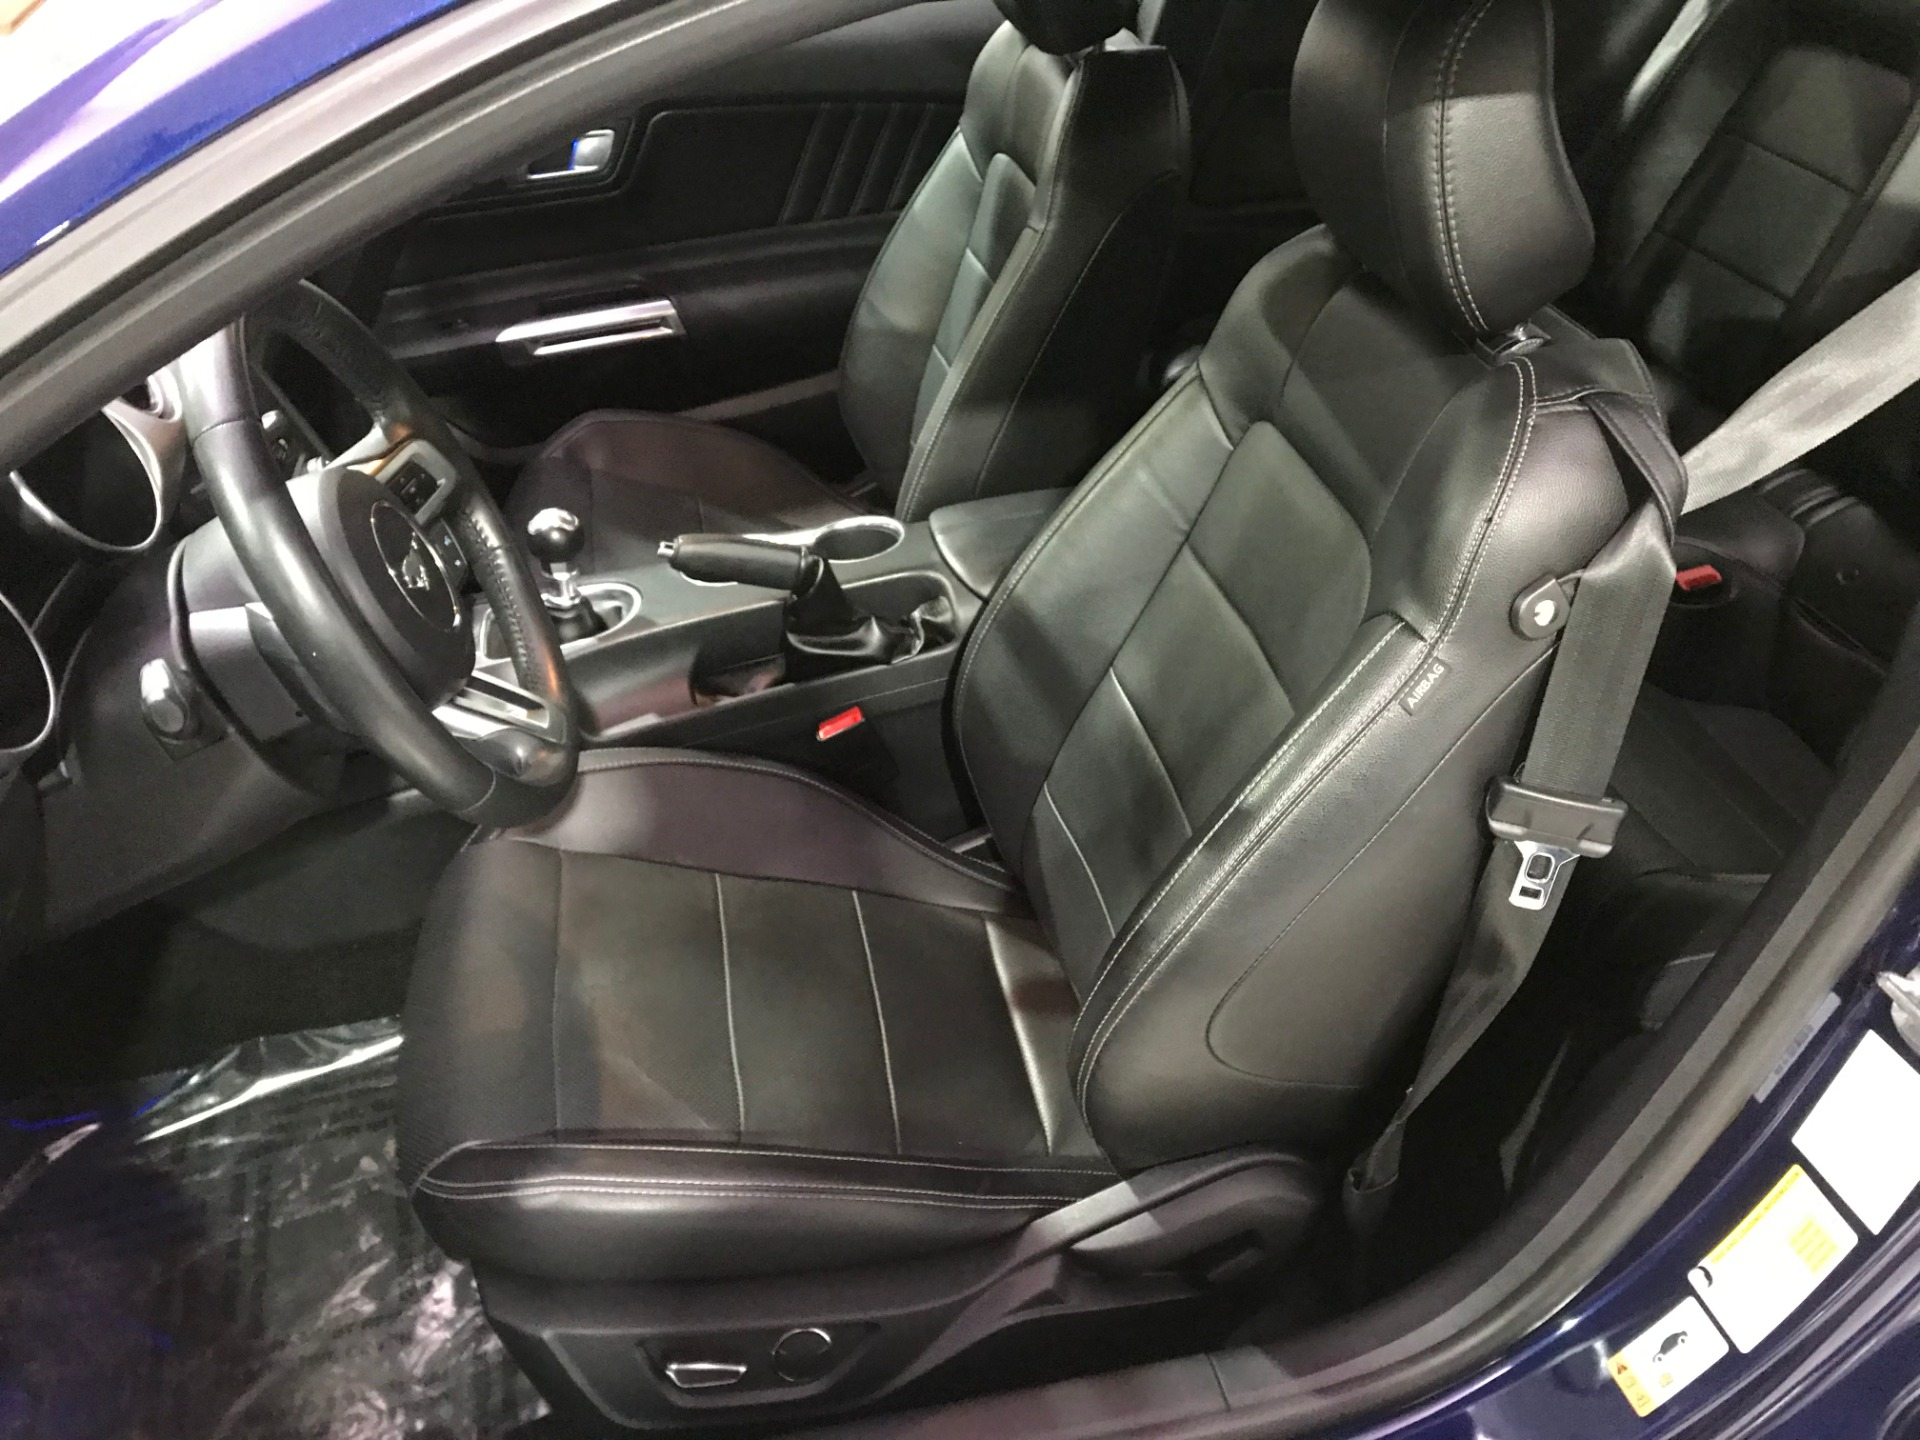 2018 Ford Mustang Gt Premium Stock 25070 For Sale Near Alsip Il